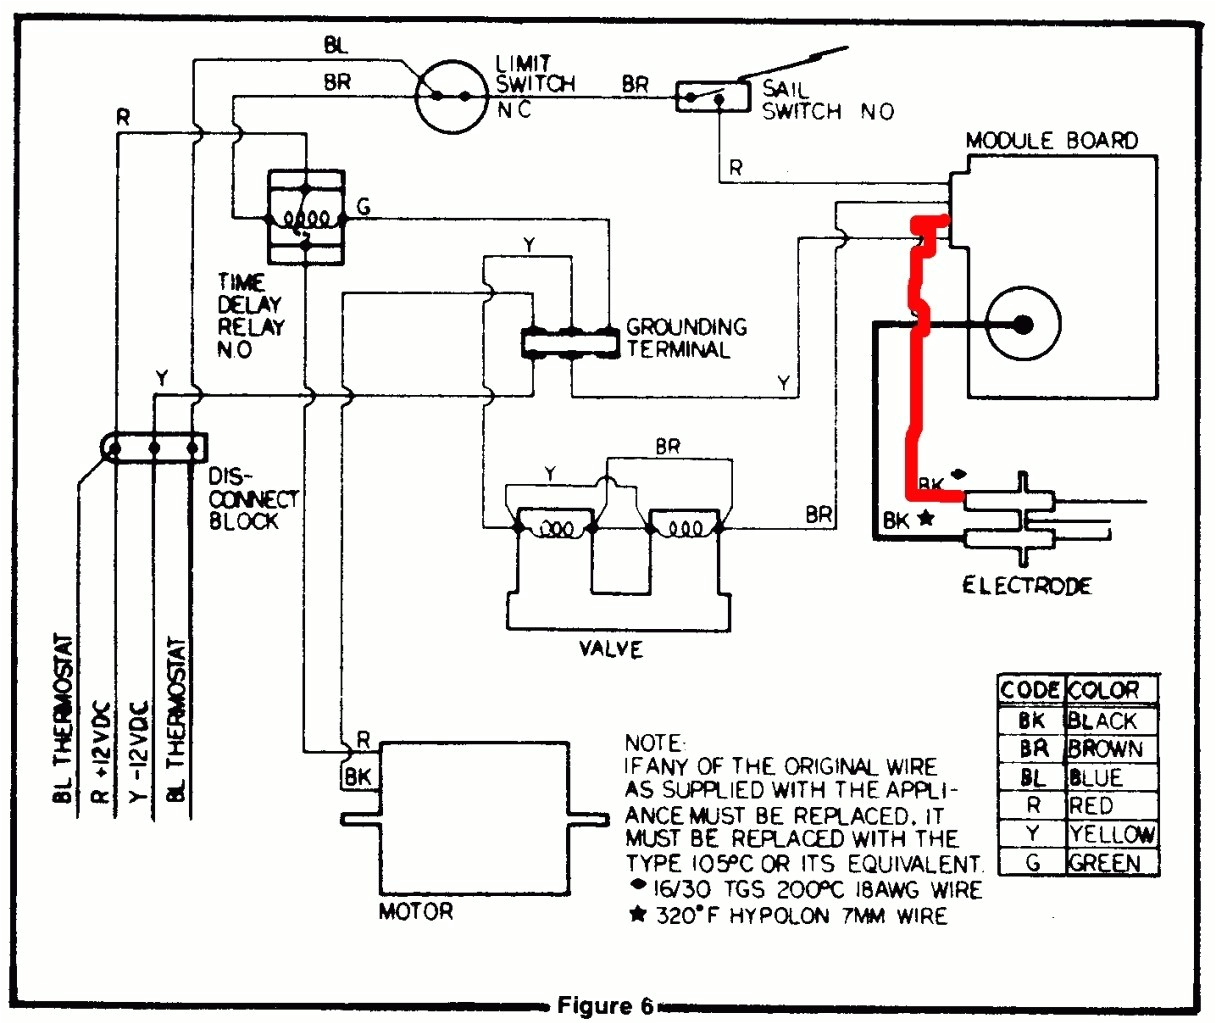 atwood water heater wiring diagram travel trailer furnace fresh best mix atwood water heater wiring diagram